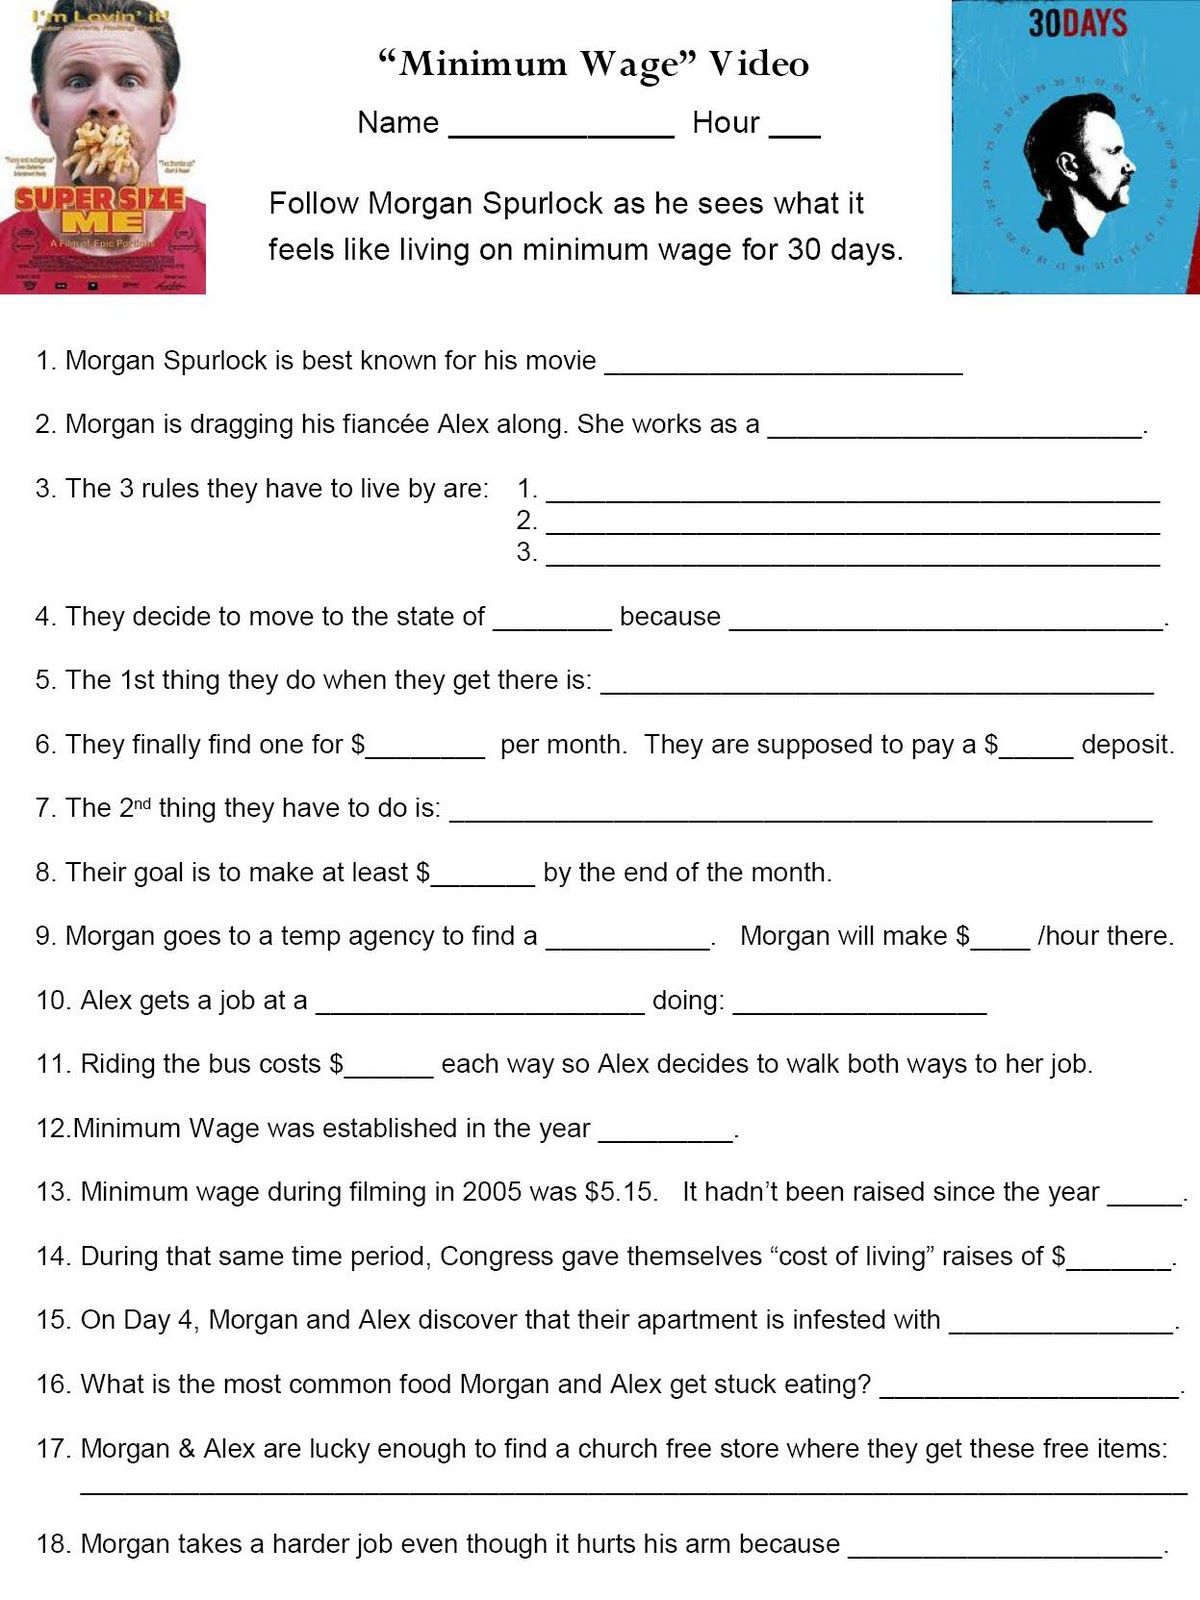 Uncategorized Supersize Me Worksheet zombie math teacher mlk day of service integrating with teacher